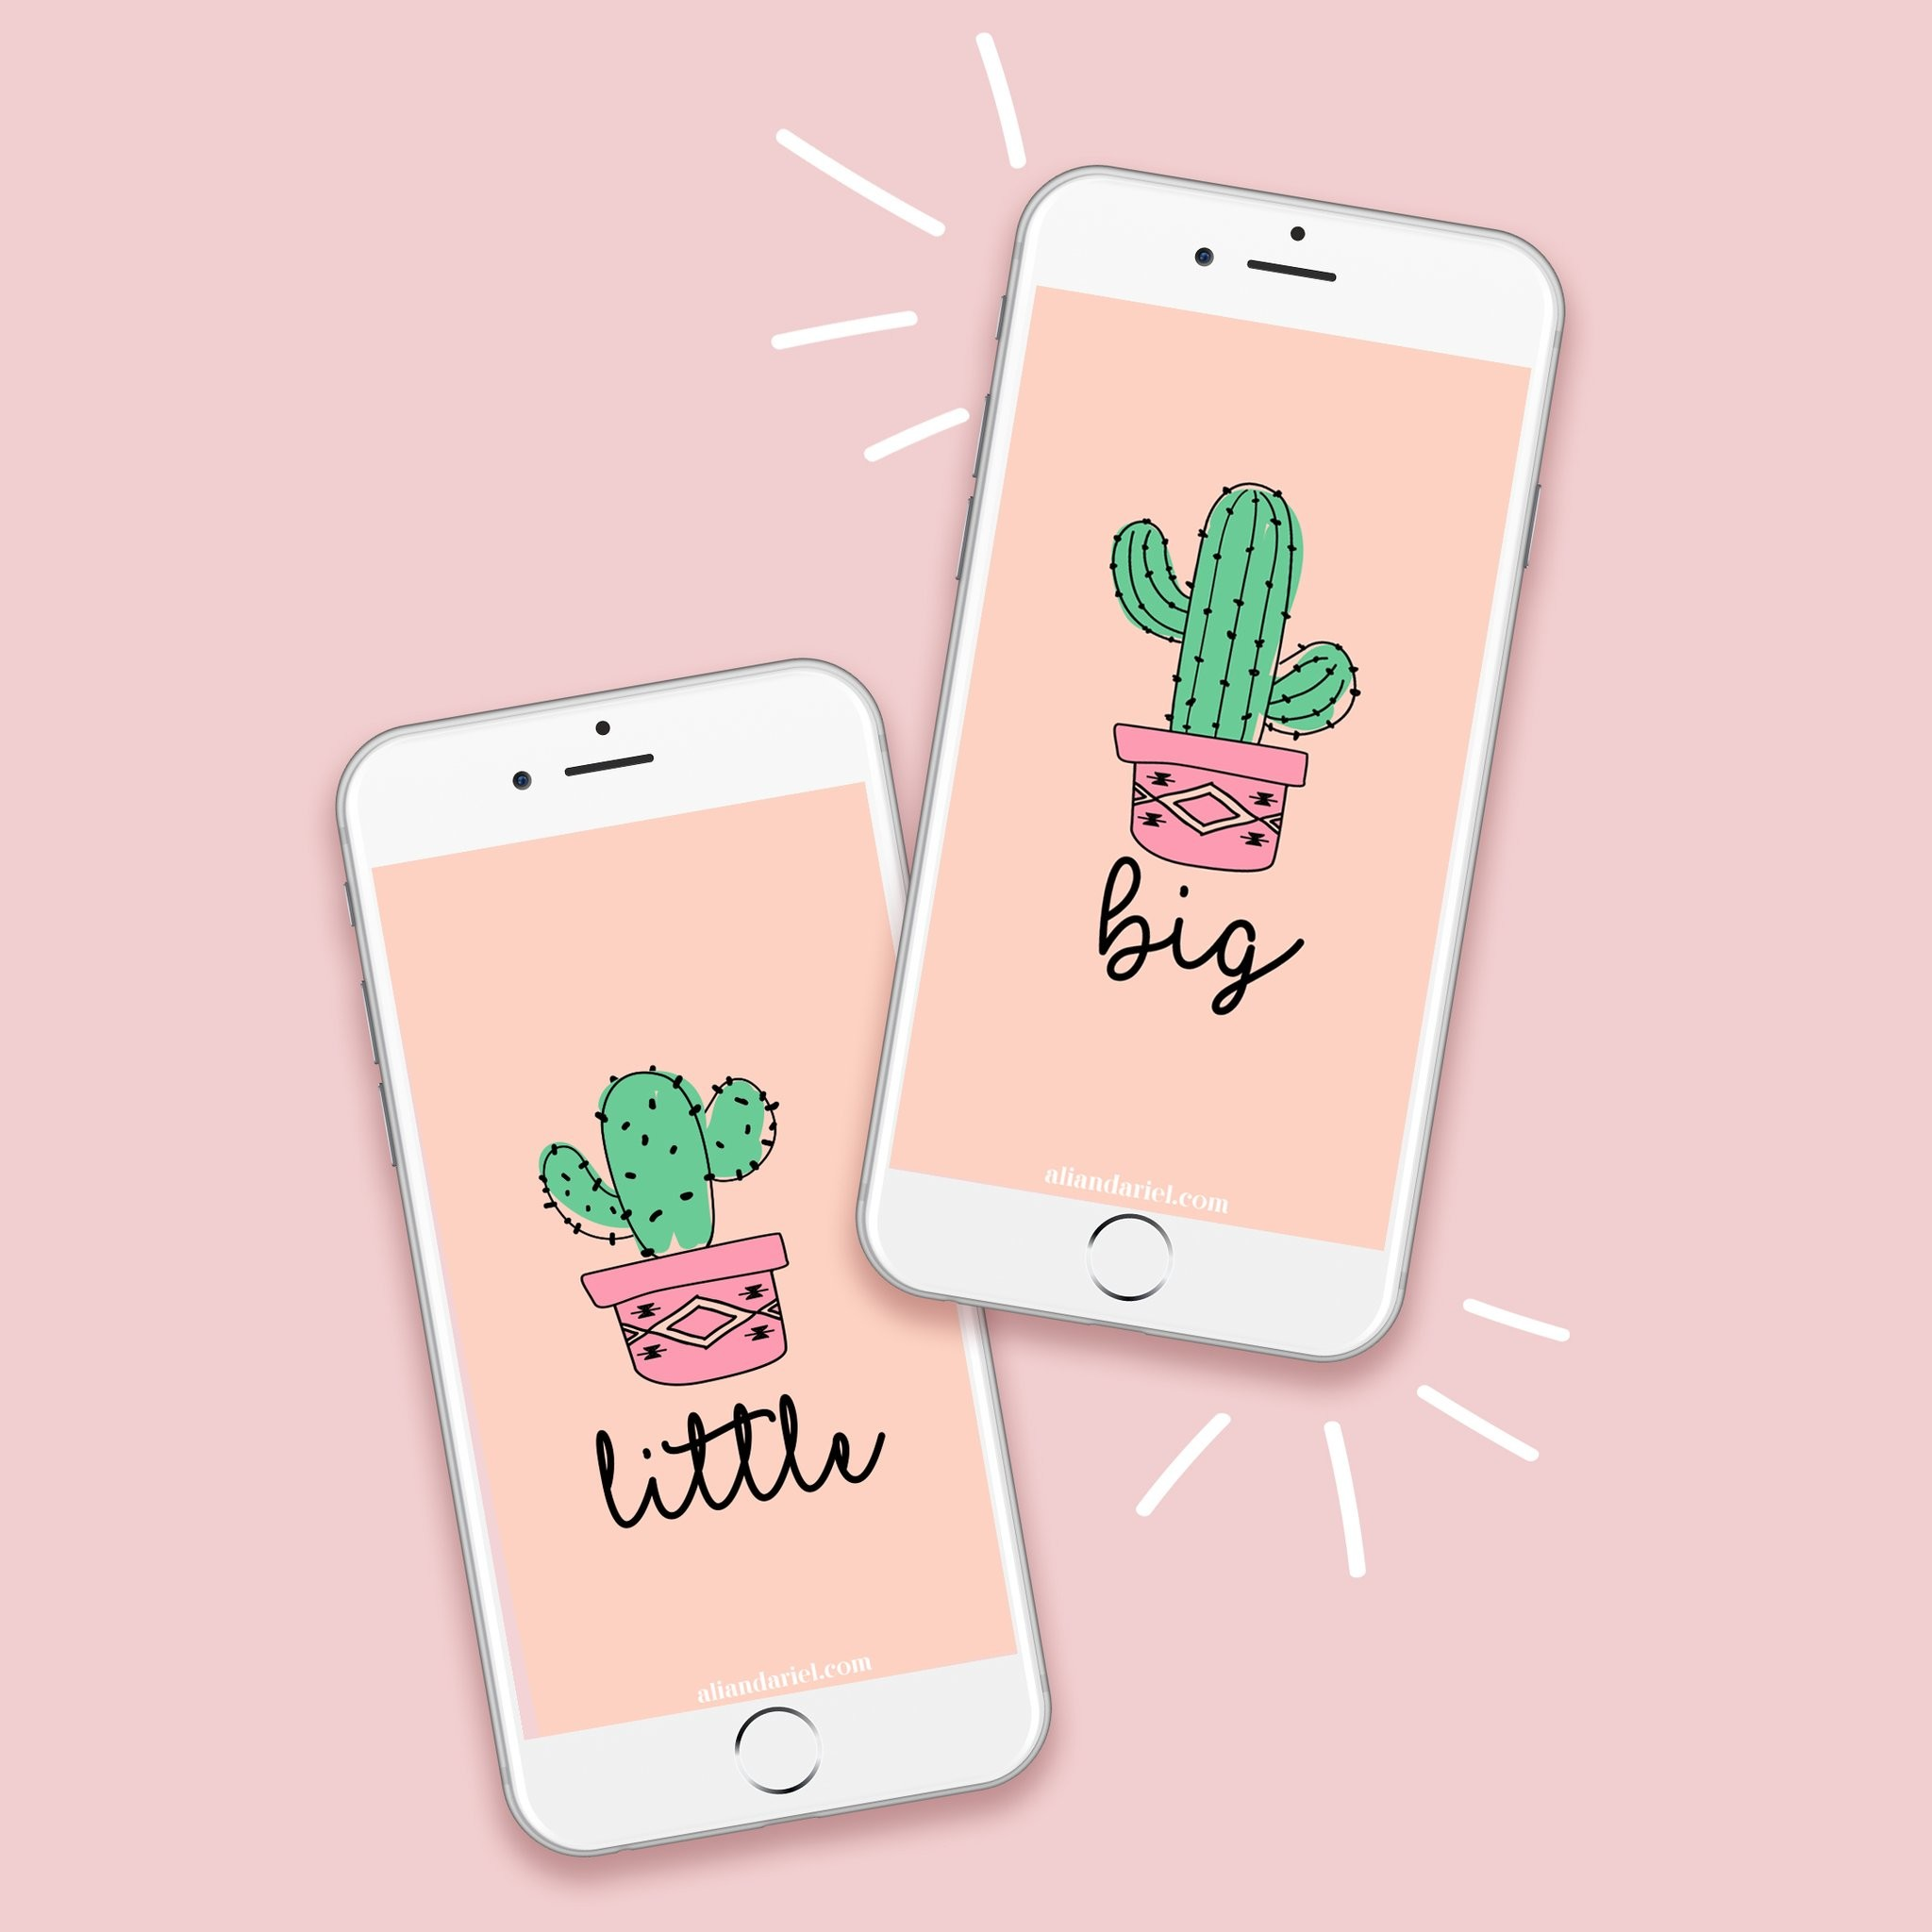 Res: 2048x2048, Big Little Saguaro and Prickly Pear Cactus FREE iPhone Wallpaper Download